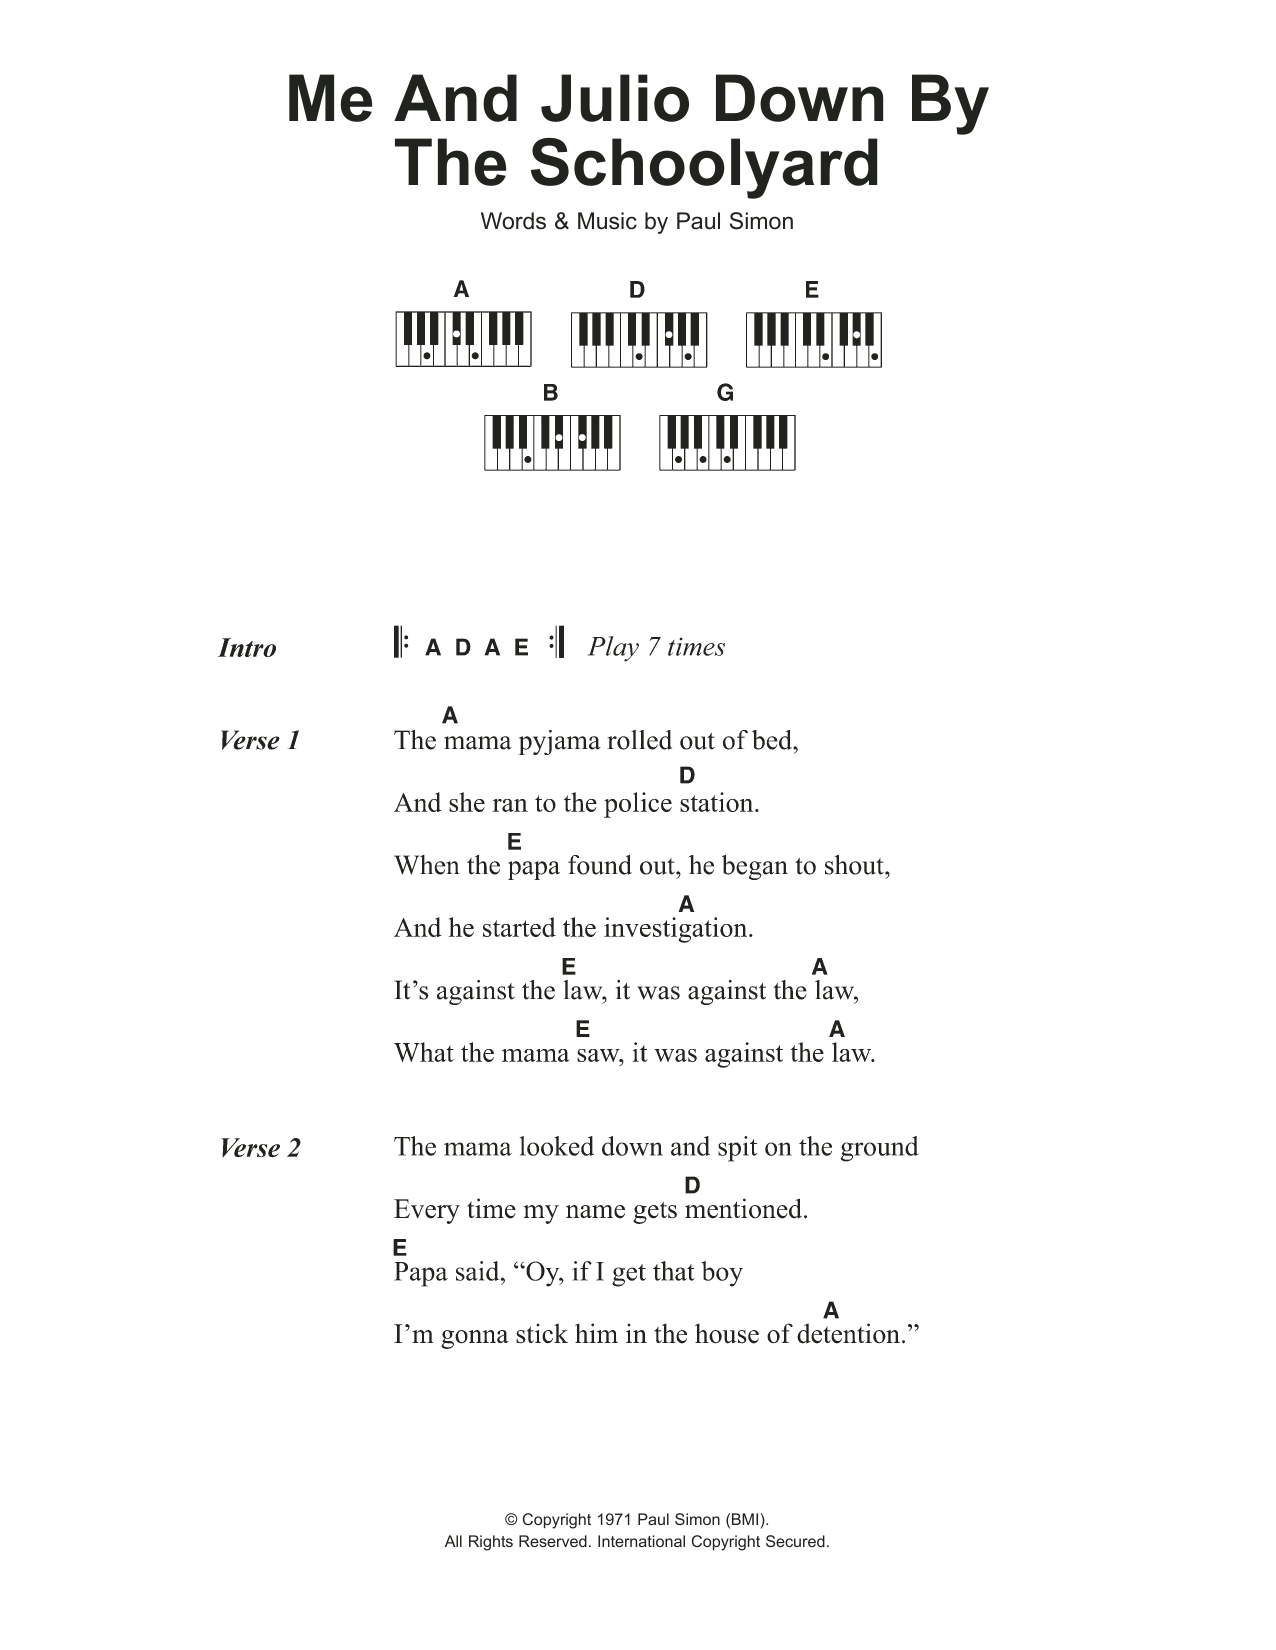 Me And Julio Down By The Schoolyard Sheet Music Paul Simon